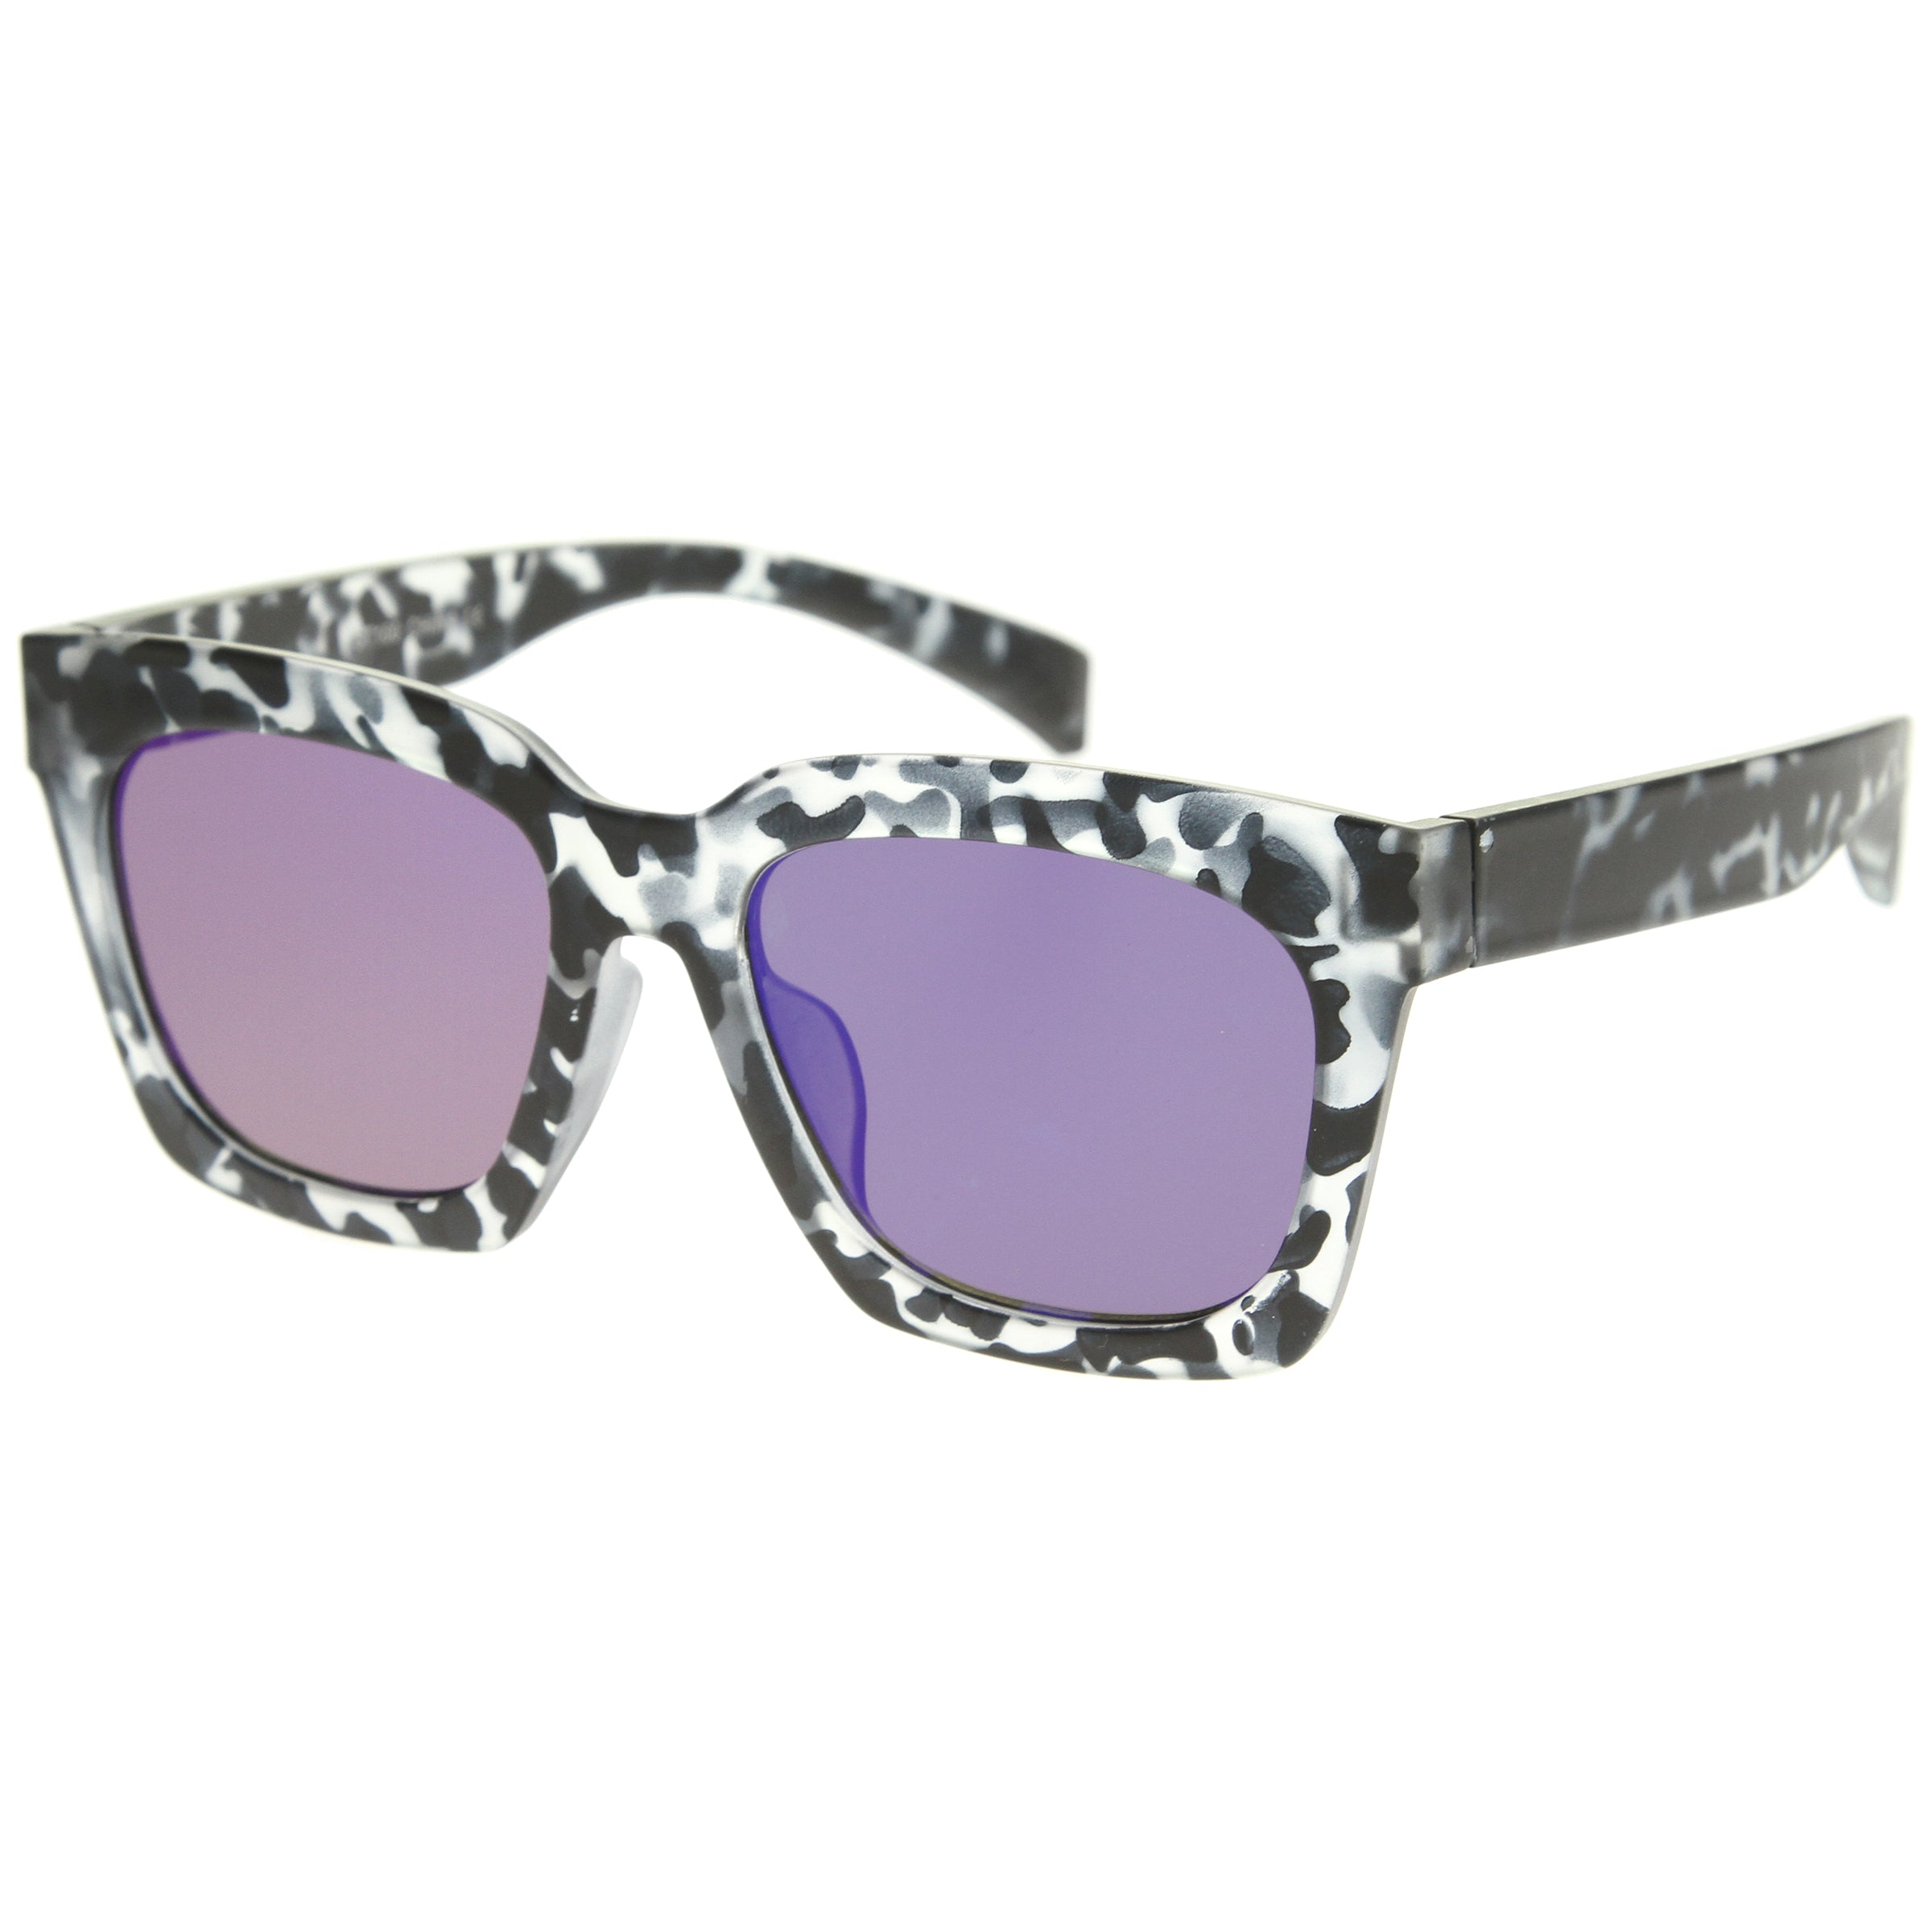 Retro Matte Horn Rimmed Colored Mirror Flat Lens Oversize Square Sunglasses 54mm - sunglass.la - 14